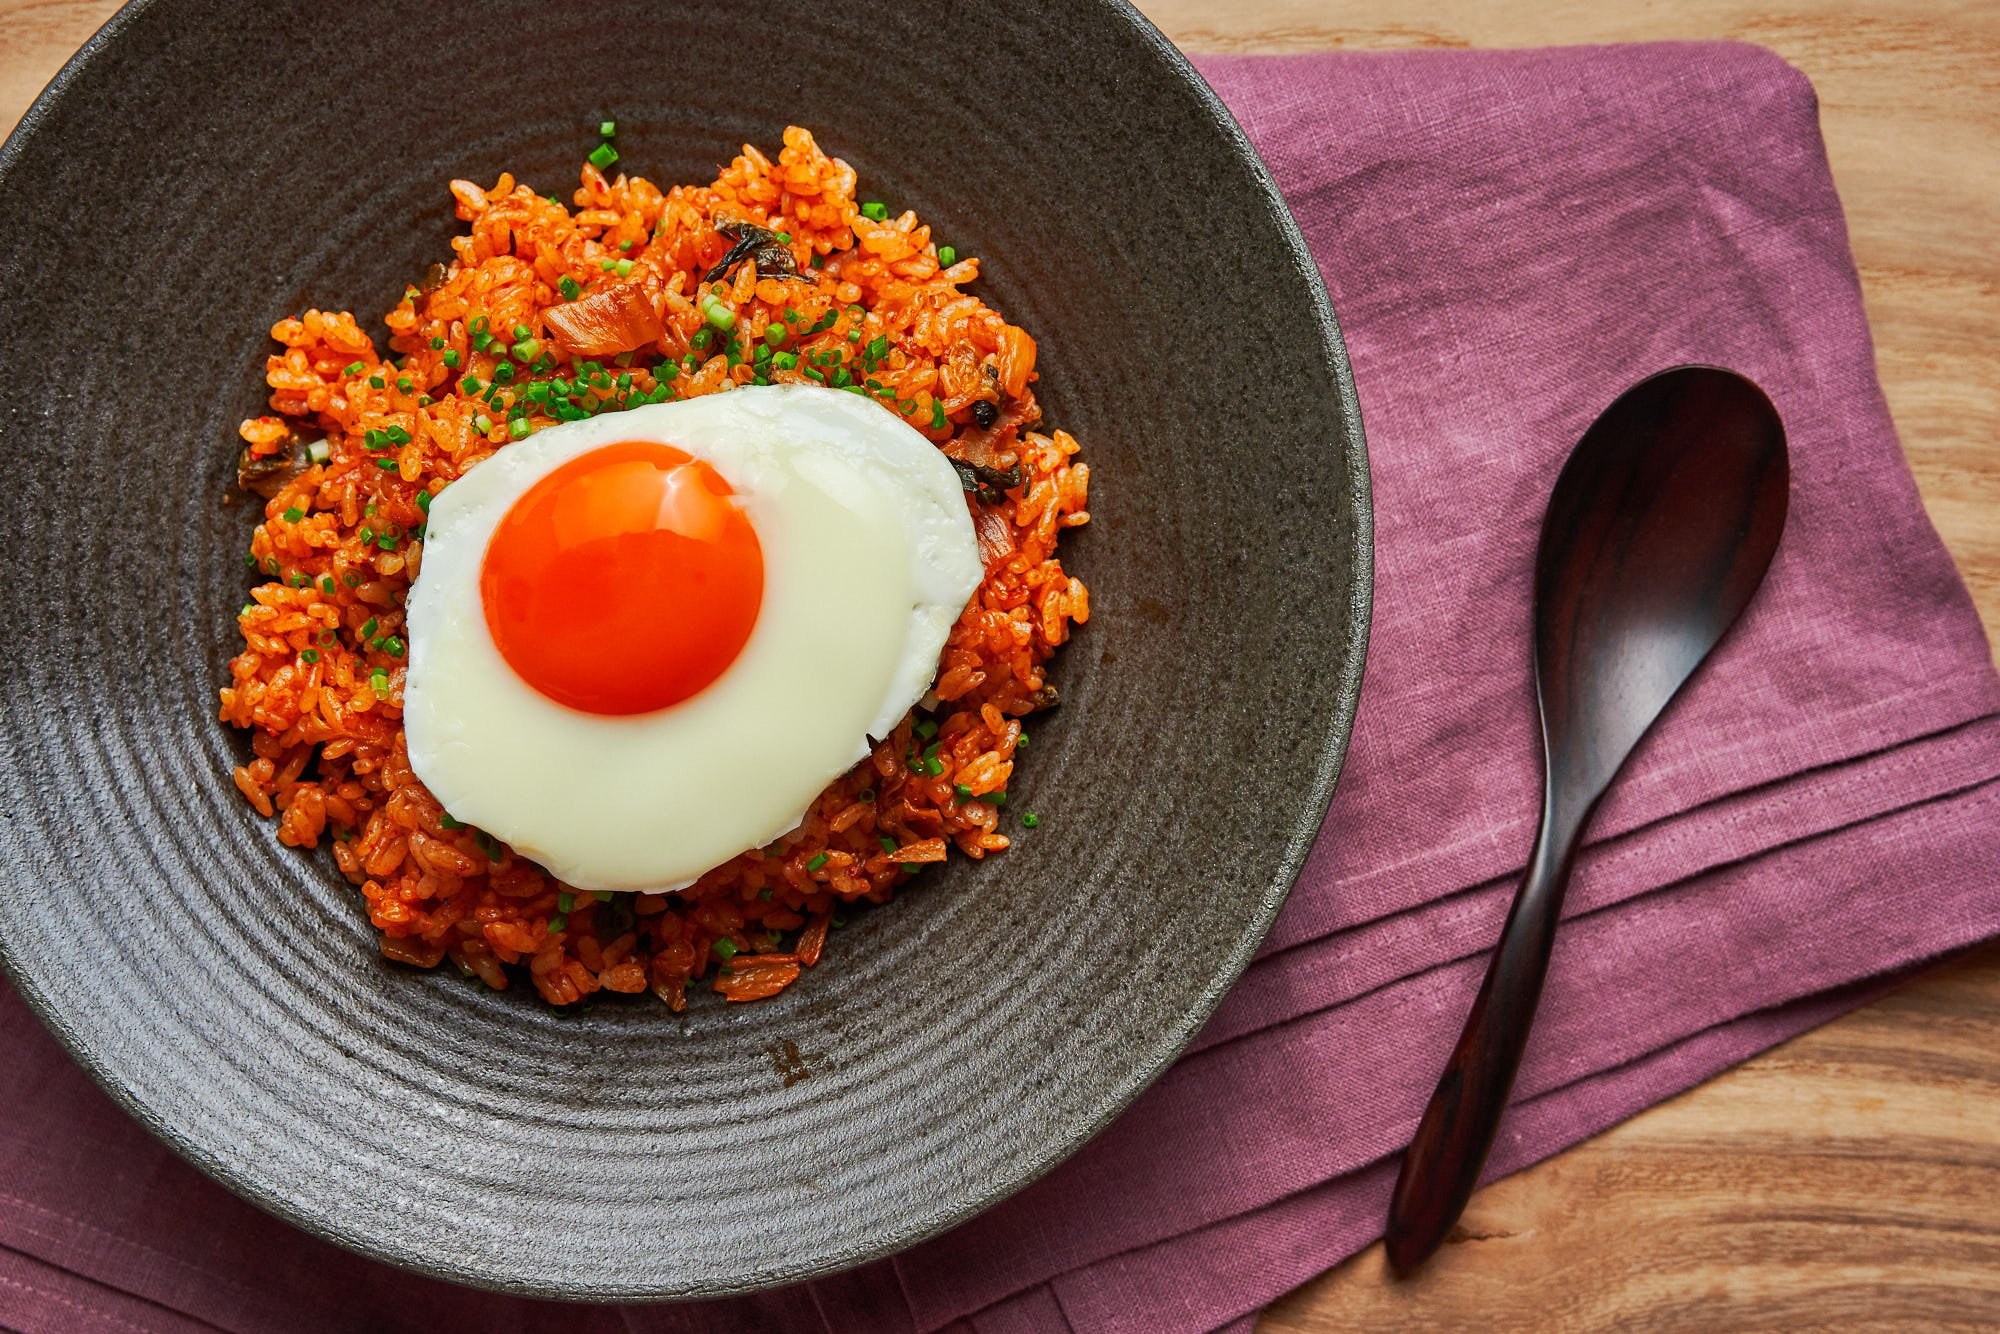 Spicy and loaded with flavor, Kimchi Fried Rice is an easy meal that comes together from just a handful of ingredients.